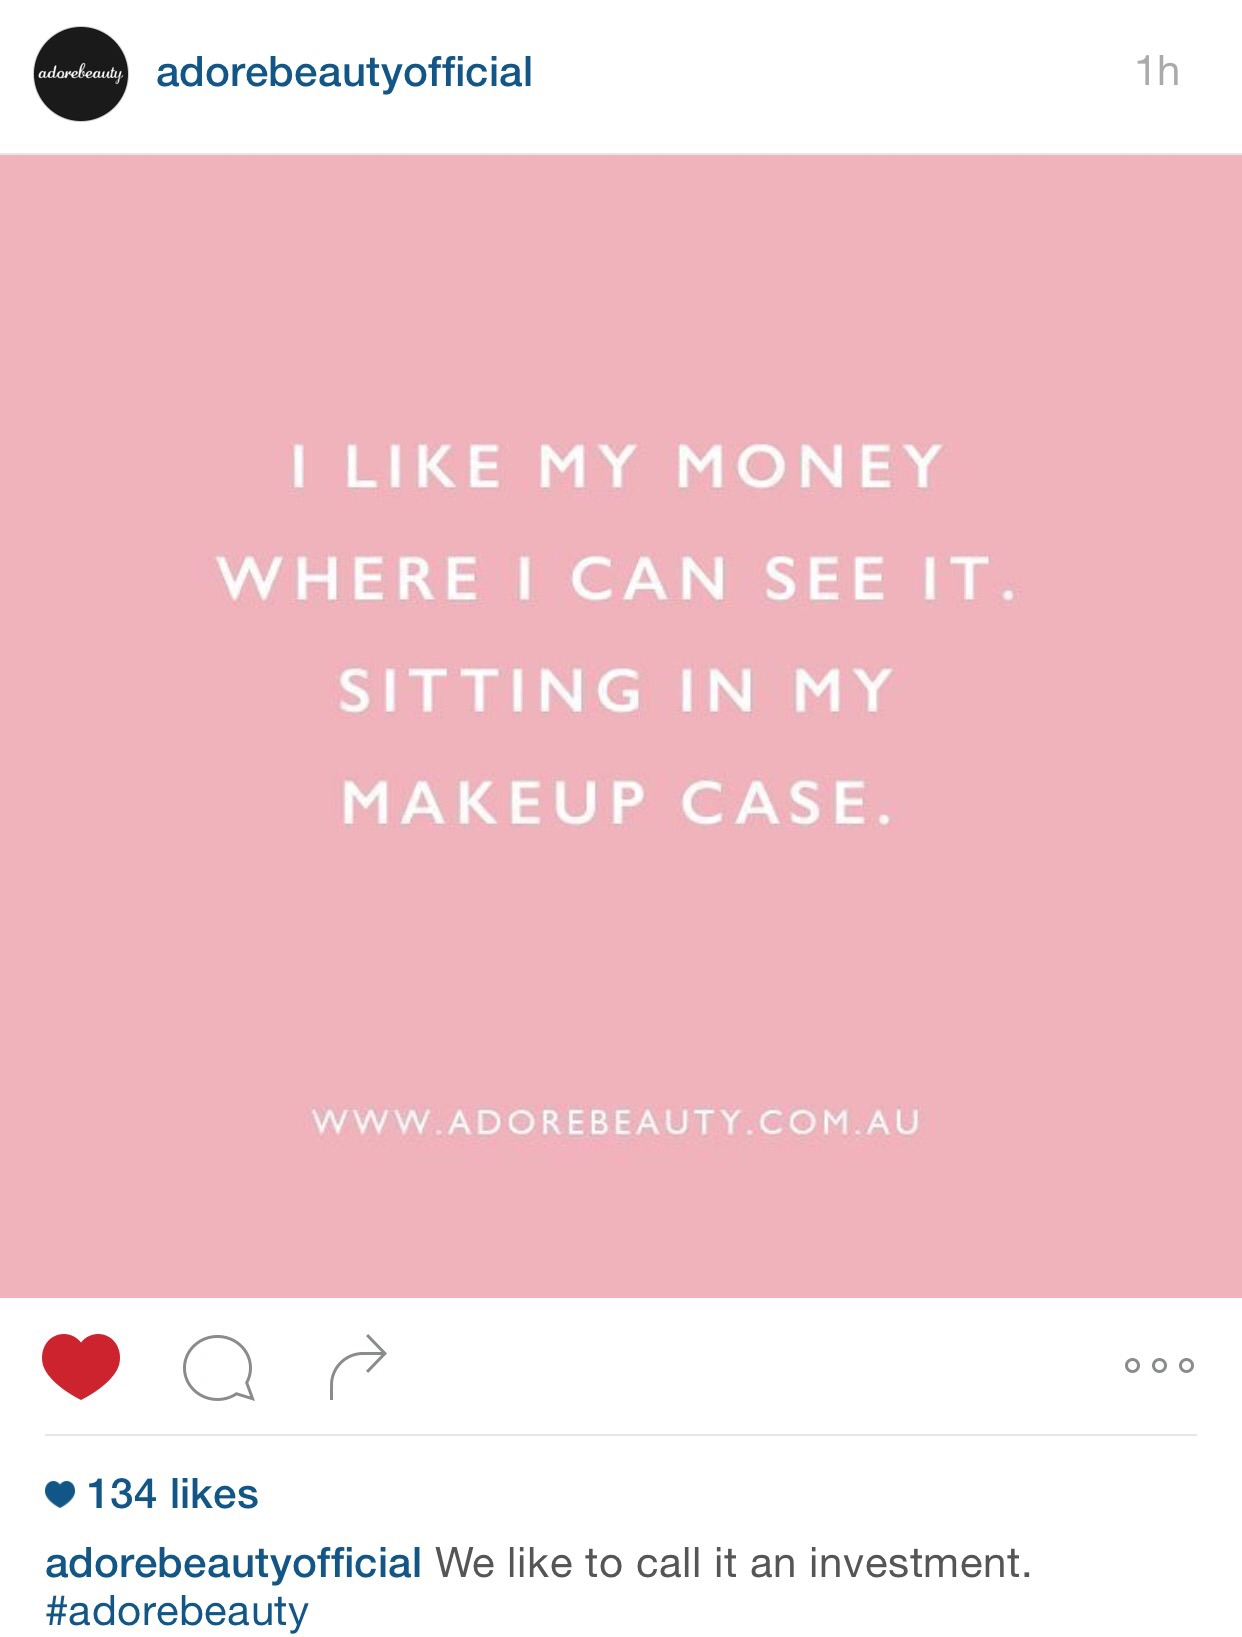 @adorebeautyofficial  on IG